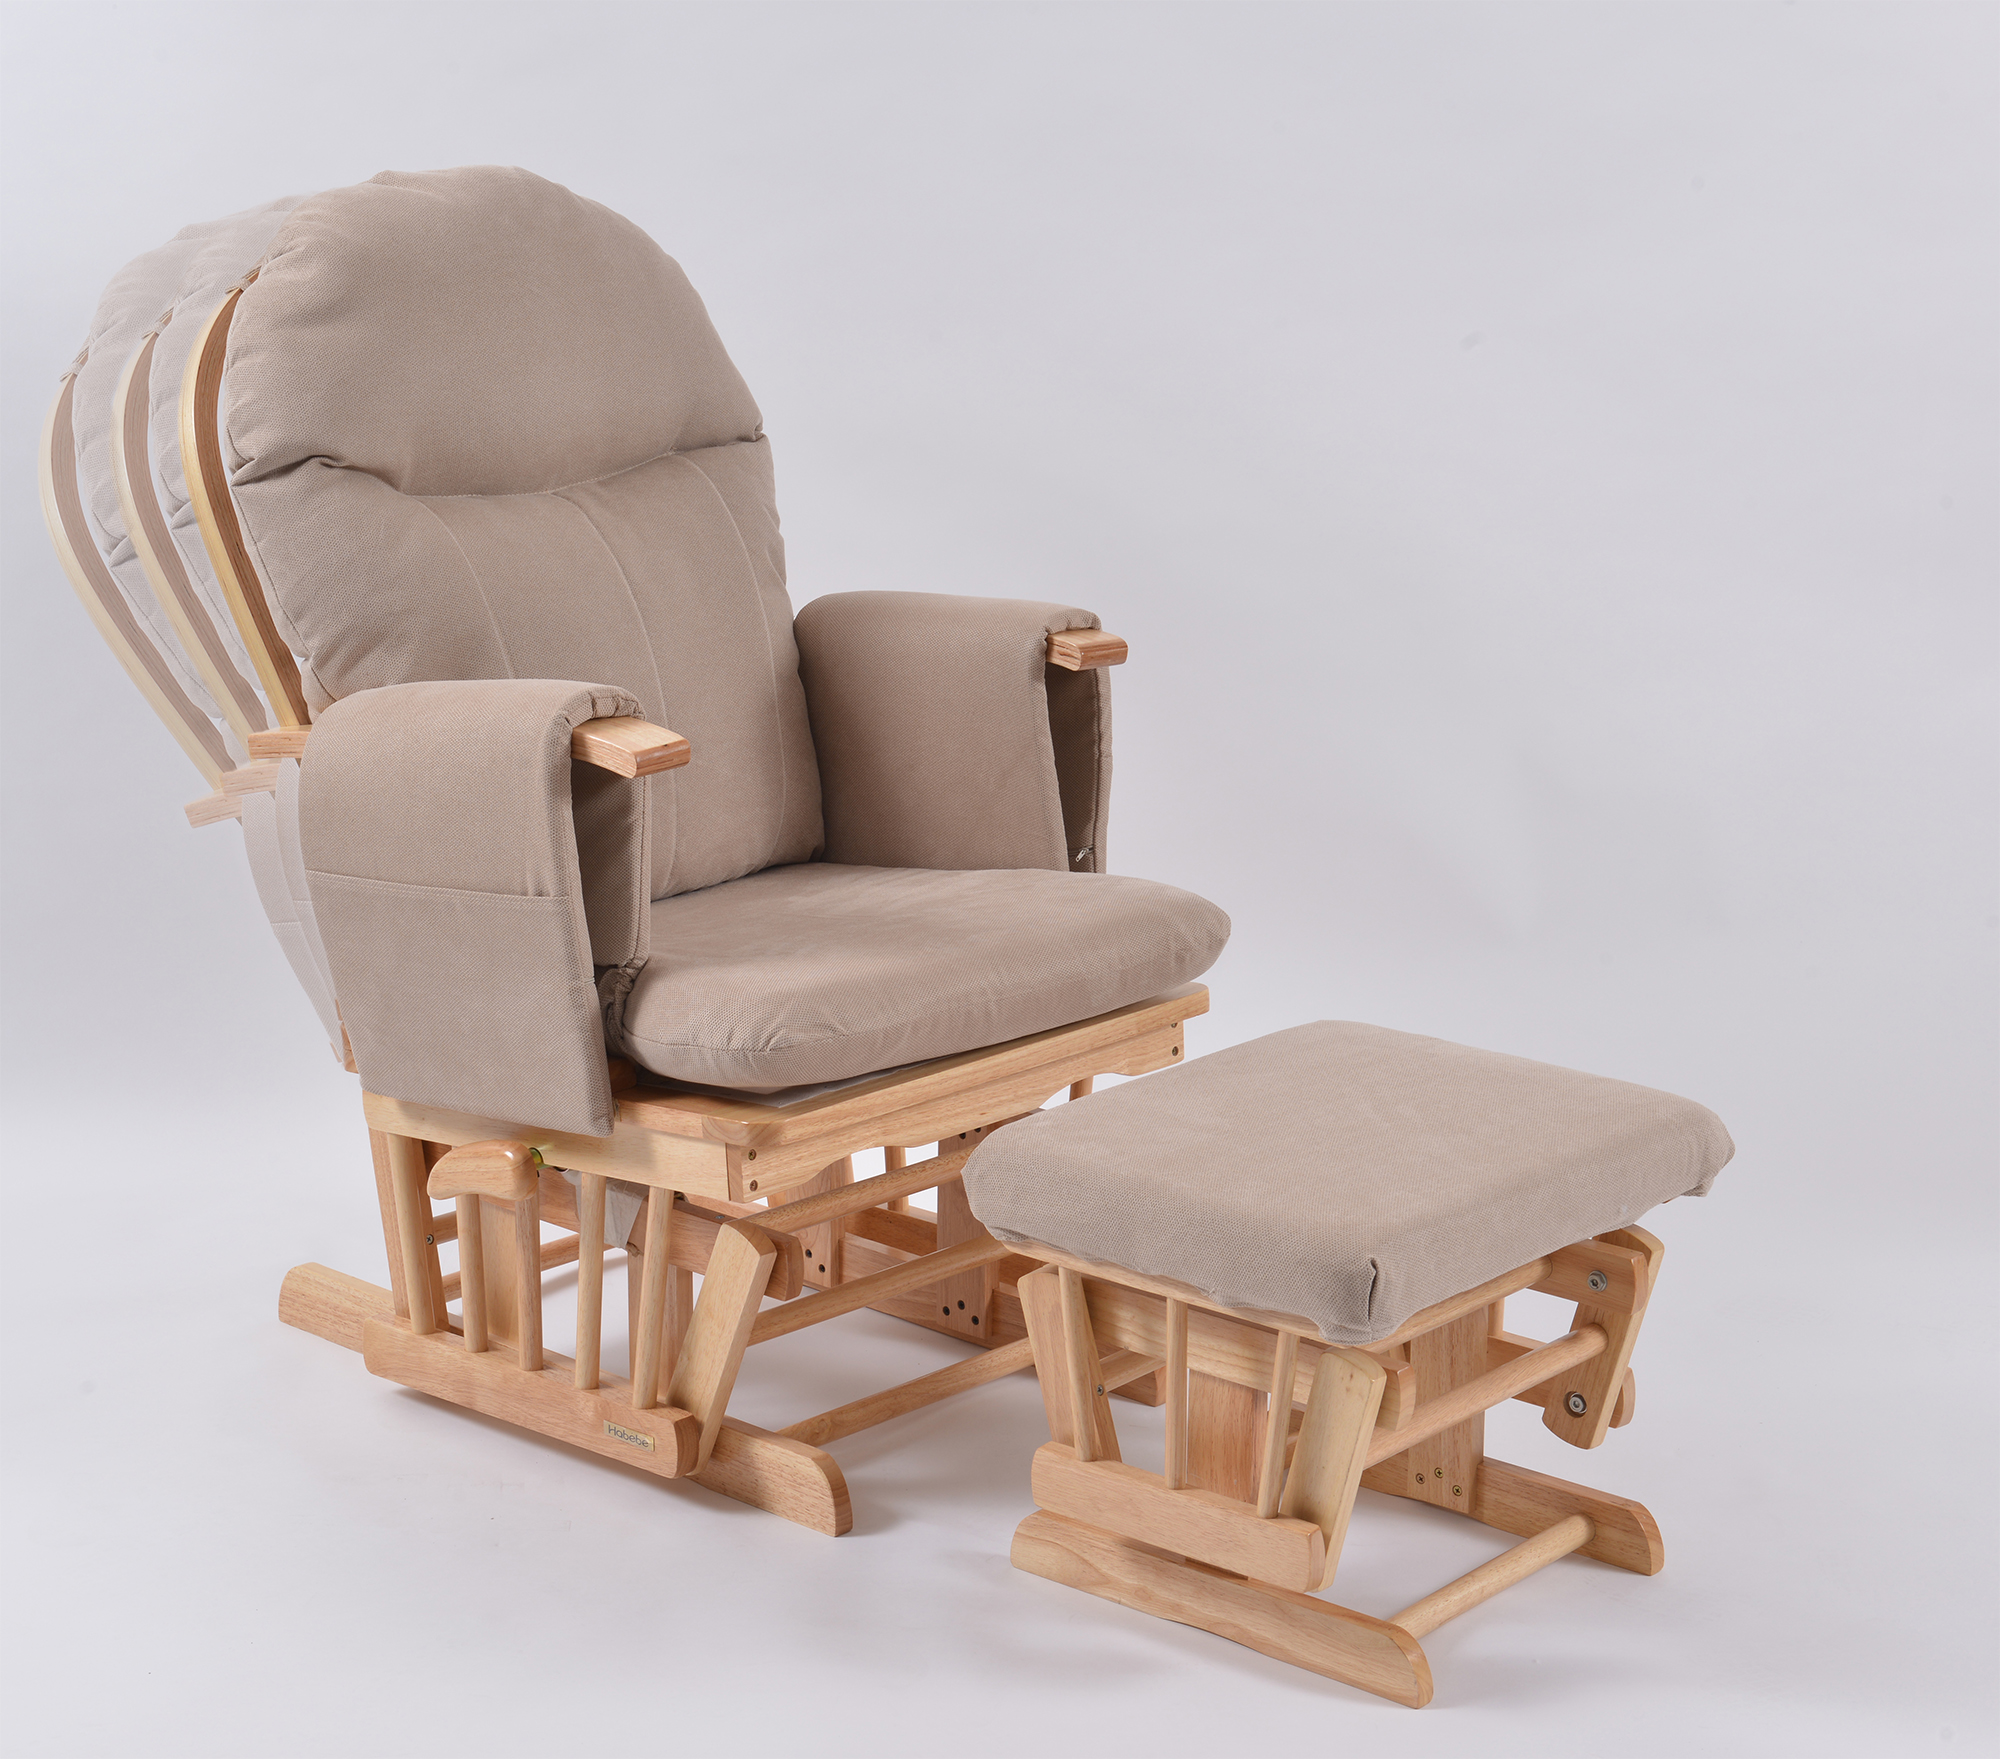 comfy nursing chair design garden habebe glider and stool  beech wood beige washable